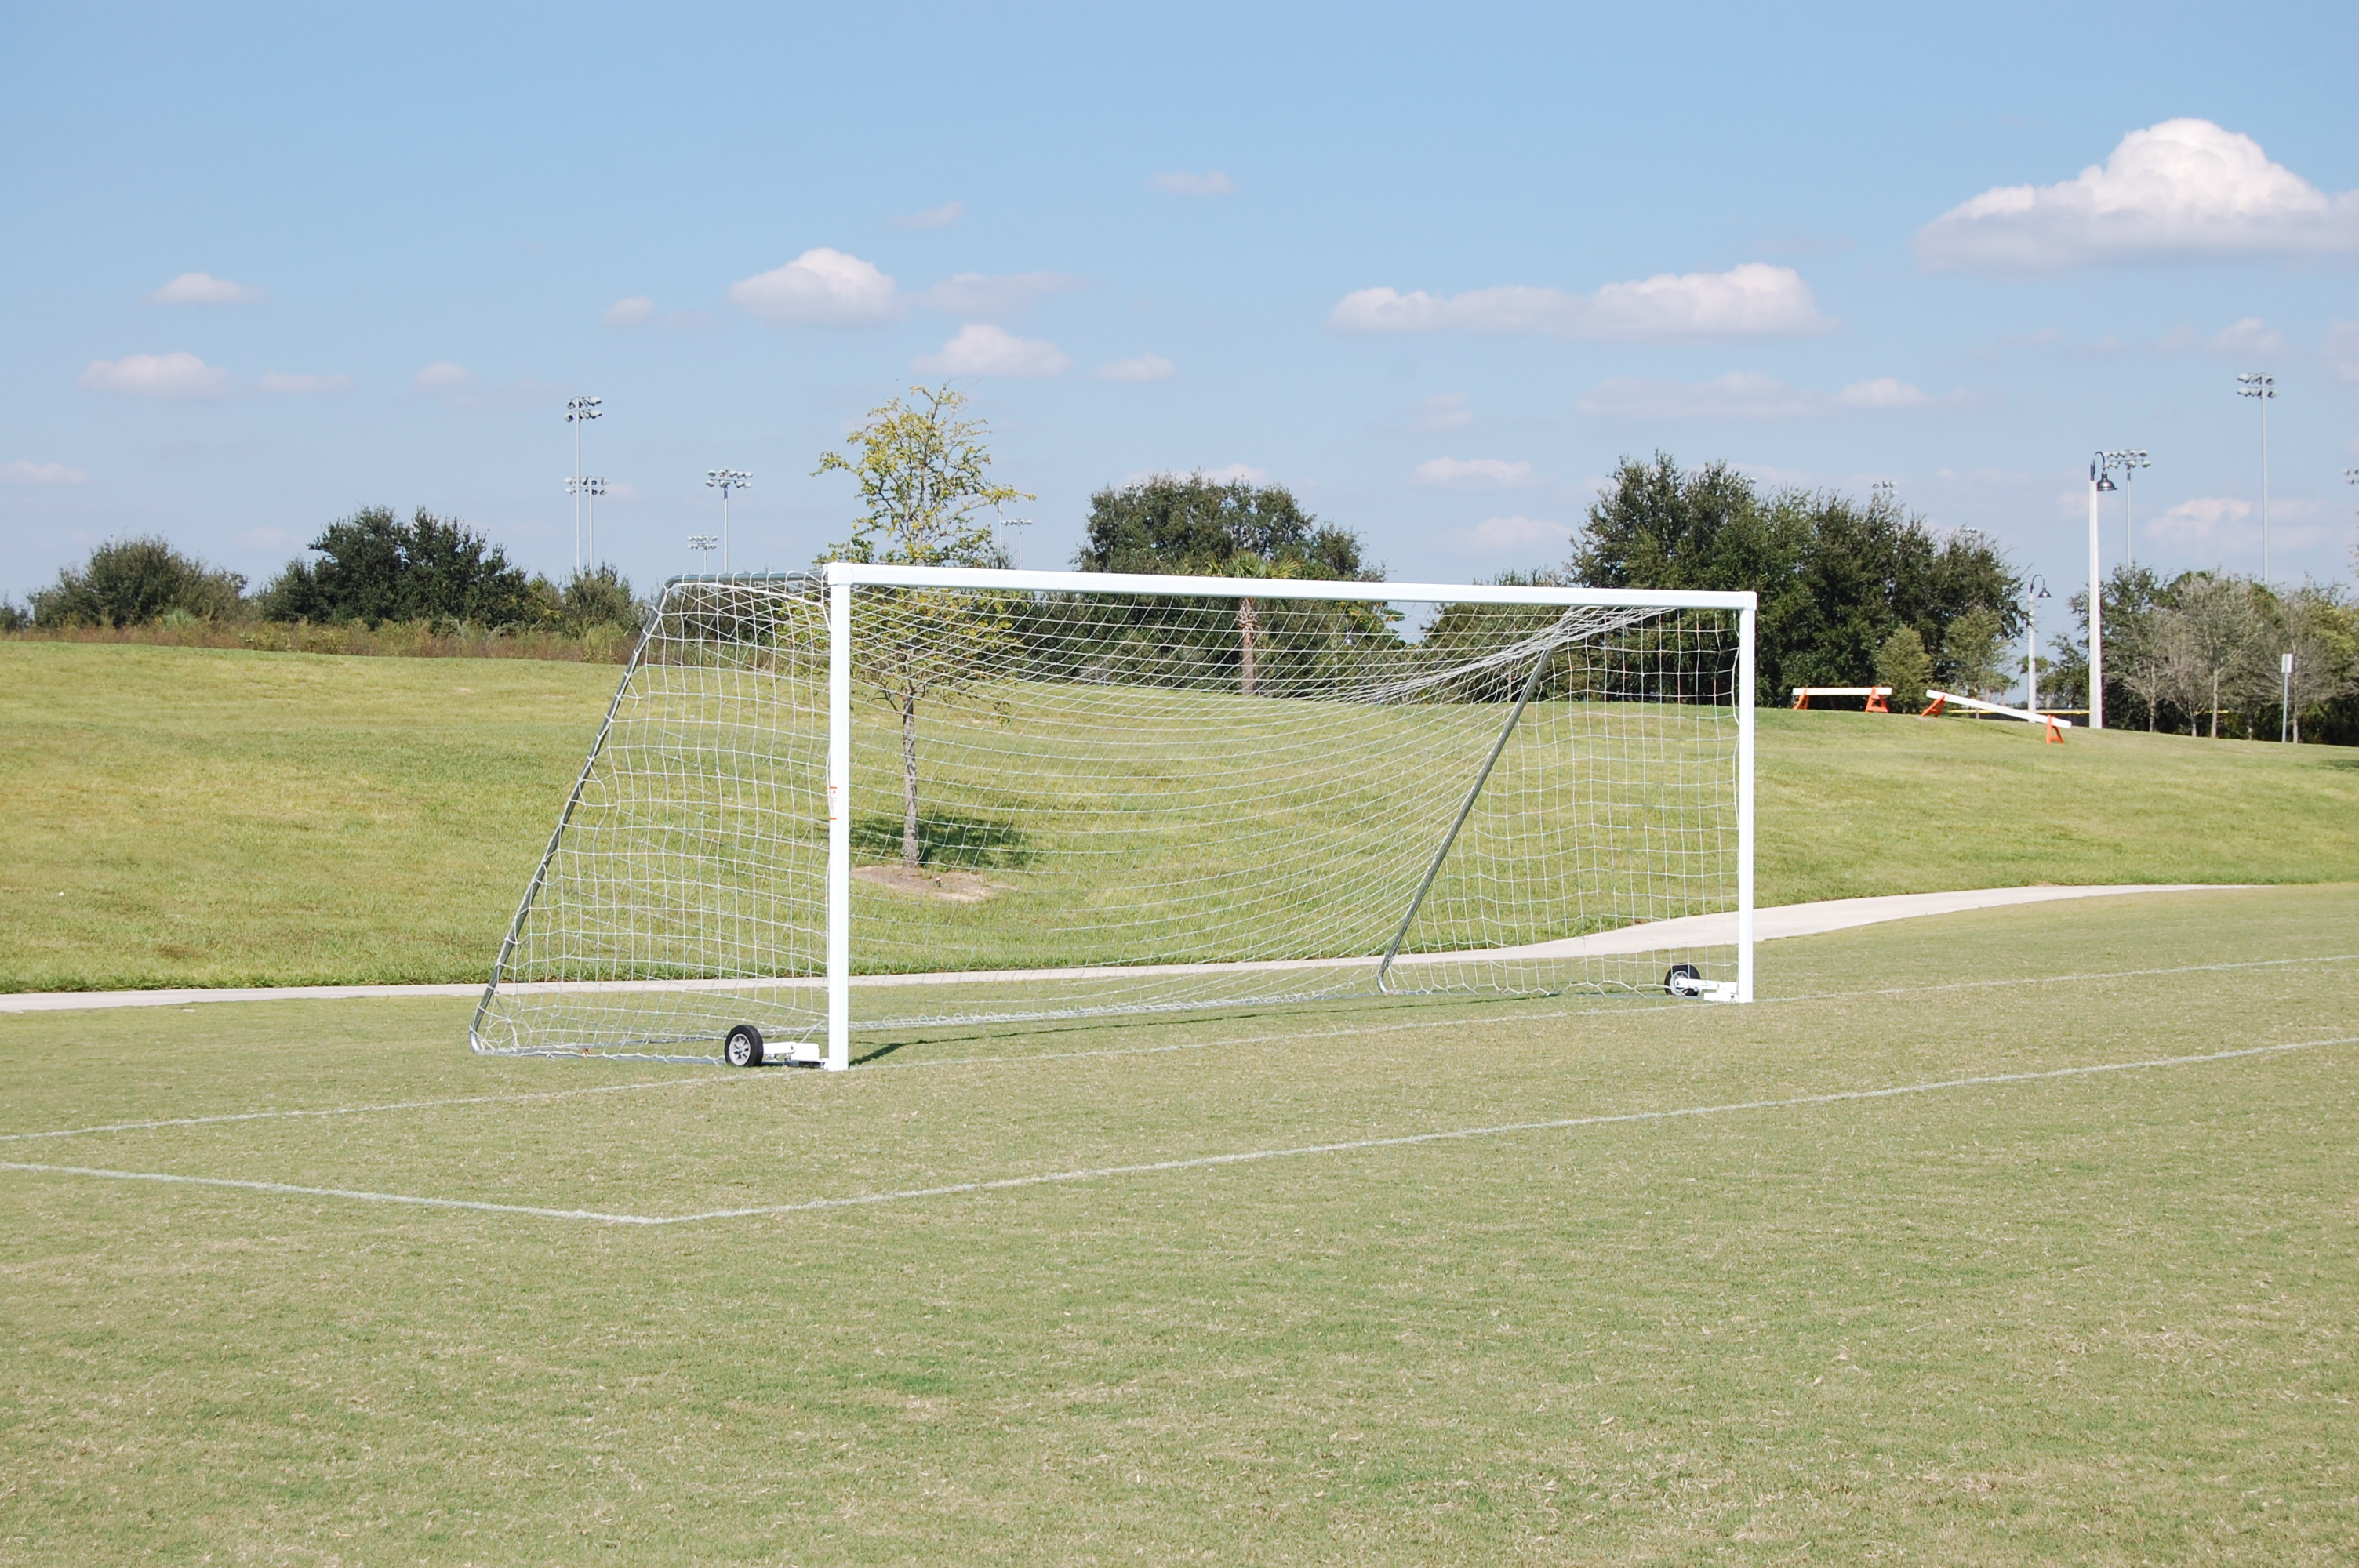 A soccer goal at the Lake Myrtle Sports Park